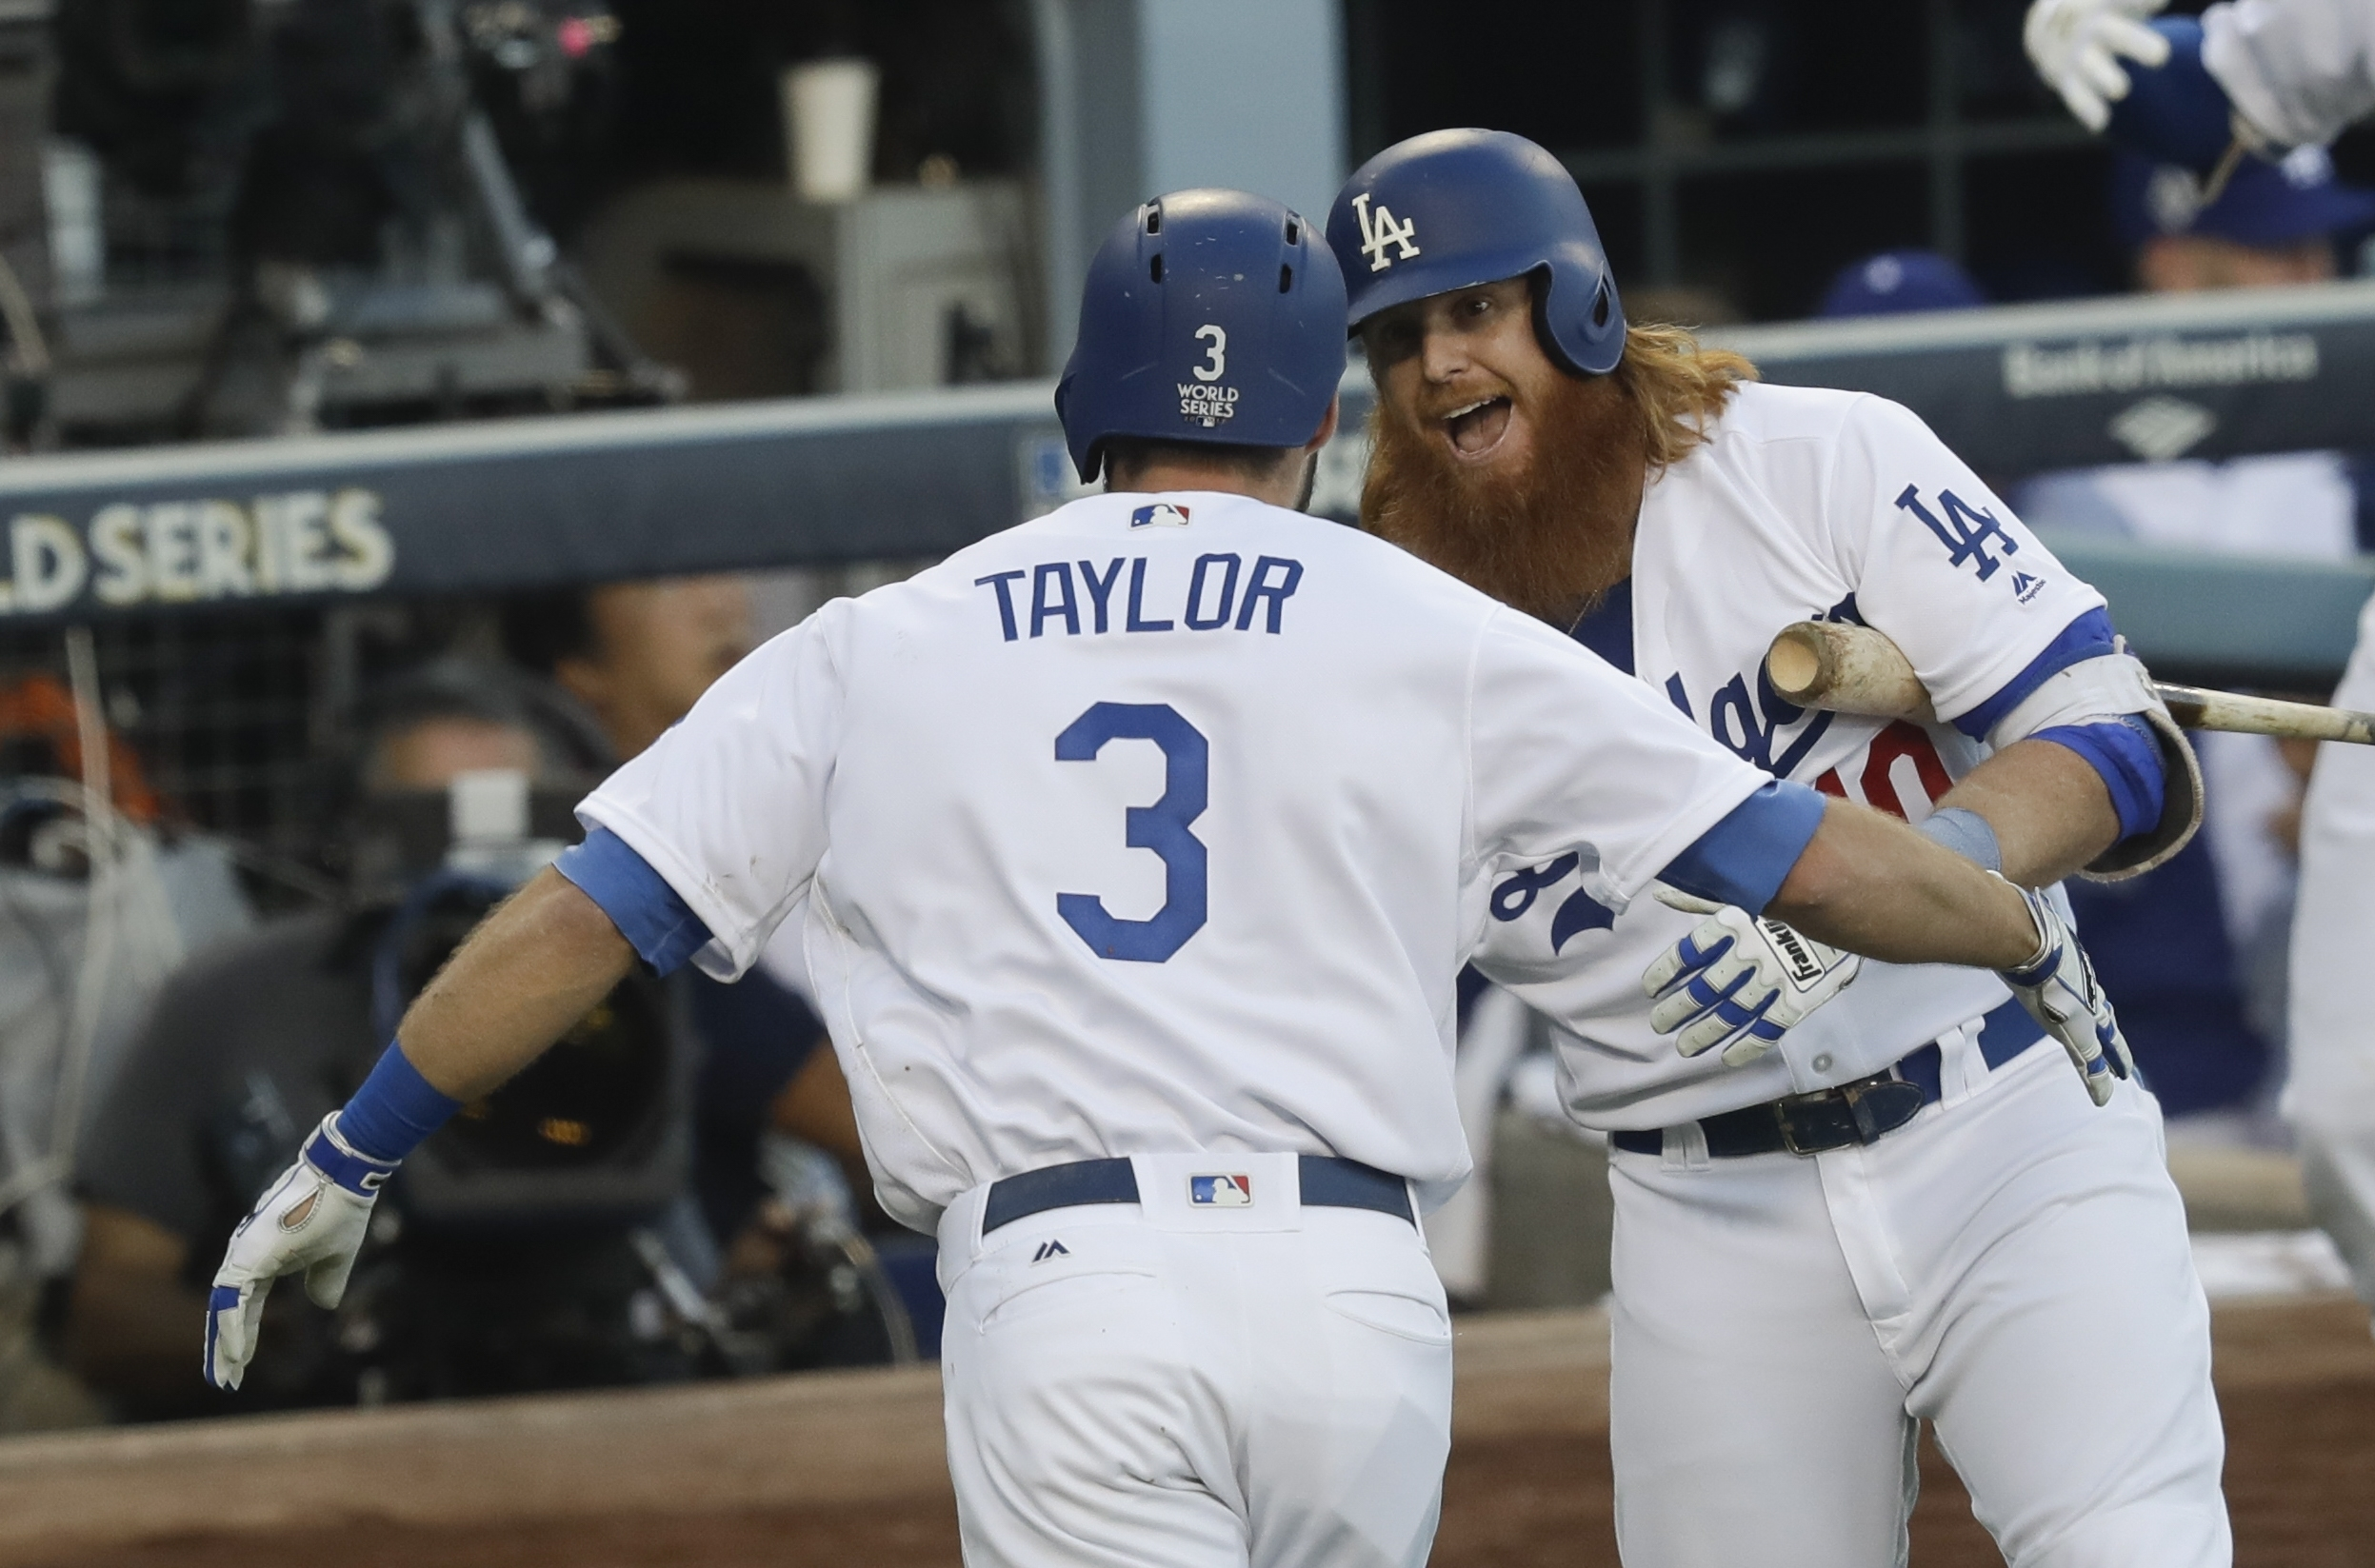 <div class='meta'><div class='origin-logo' data-origin='AP'></div><span class='caption-text' data-credit='(AP Photo/Alex Gallardo)'>Los Angeles Dodgers' Chris Taylor is congratulated by Justin Turner after hitting a home run during the first inning of Game 1 against the Houston Astros Tuesday, Oct. 24, 2017.</span></div>